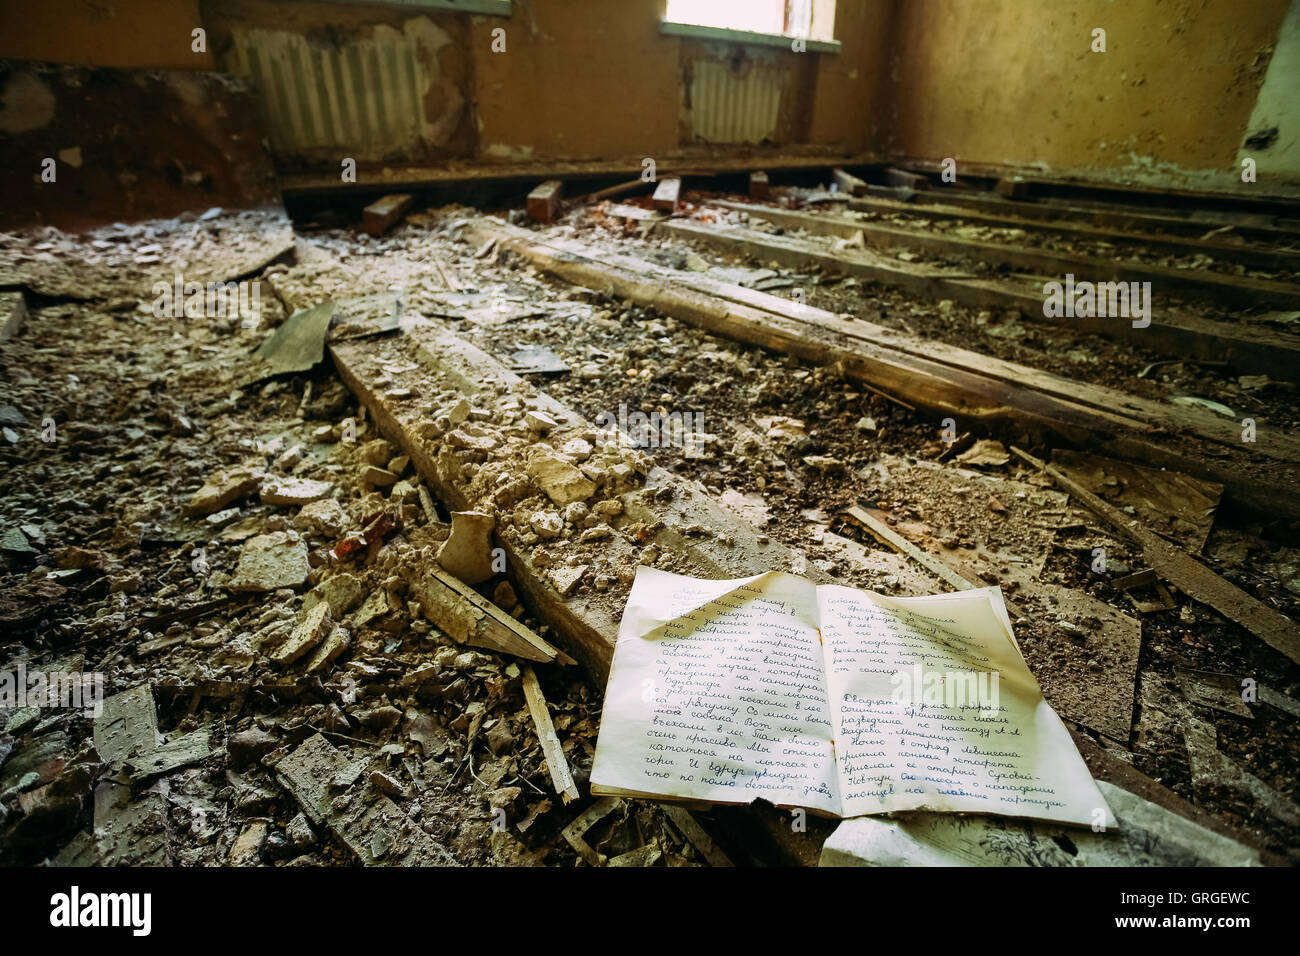 The Consequences Of The Nuclear Pollution After Chernobyl Disaster. The Pupil's Copybook On The Ruined Floor - Stock Image